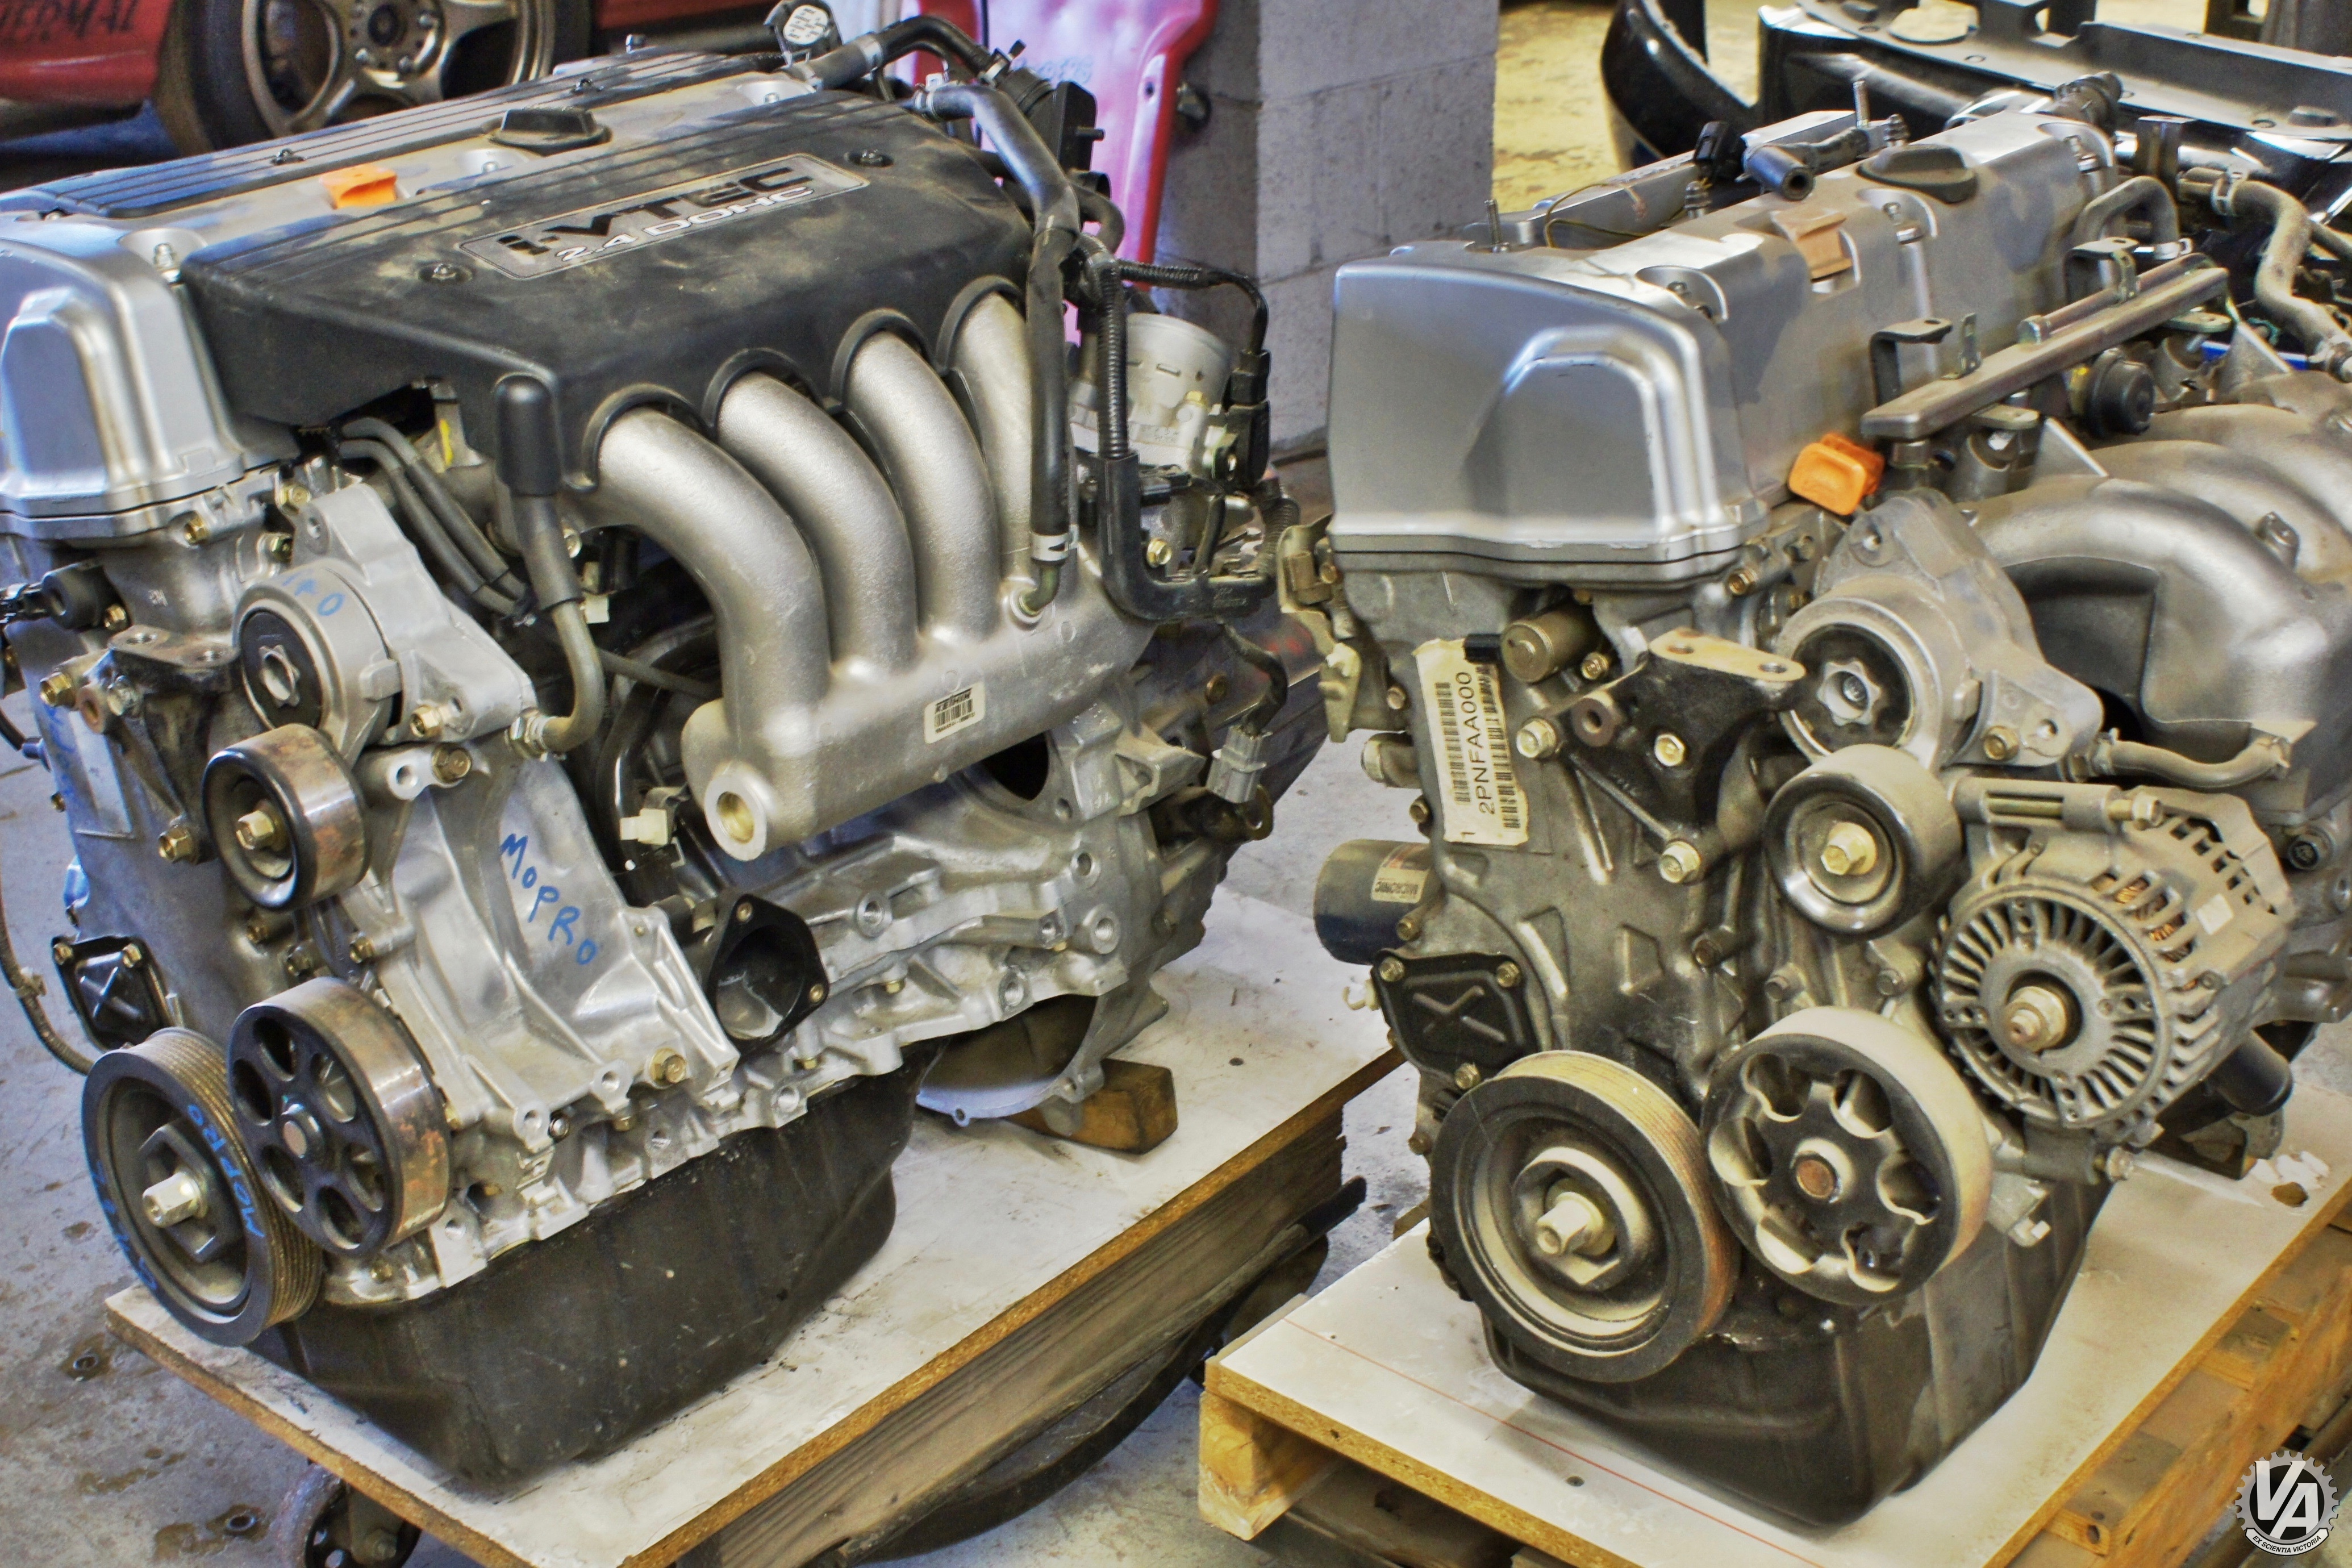 687?ver=30 budget k series engine swap the parts list vtec academy  at bayanpartner.co